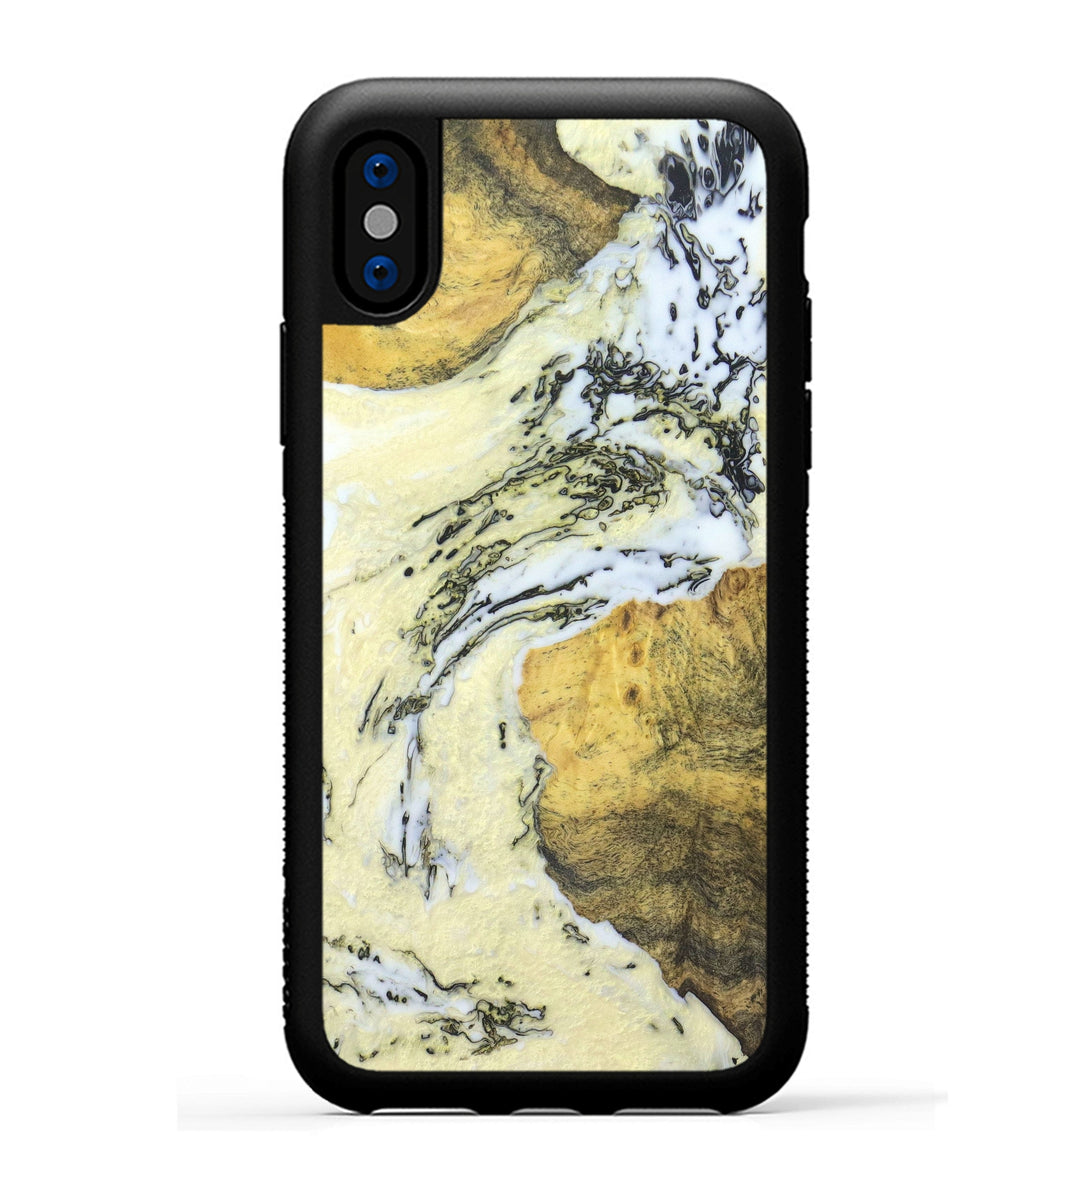 iPhone Xs Wood+Resin Case - Patrizia (Black & White, 334665)